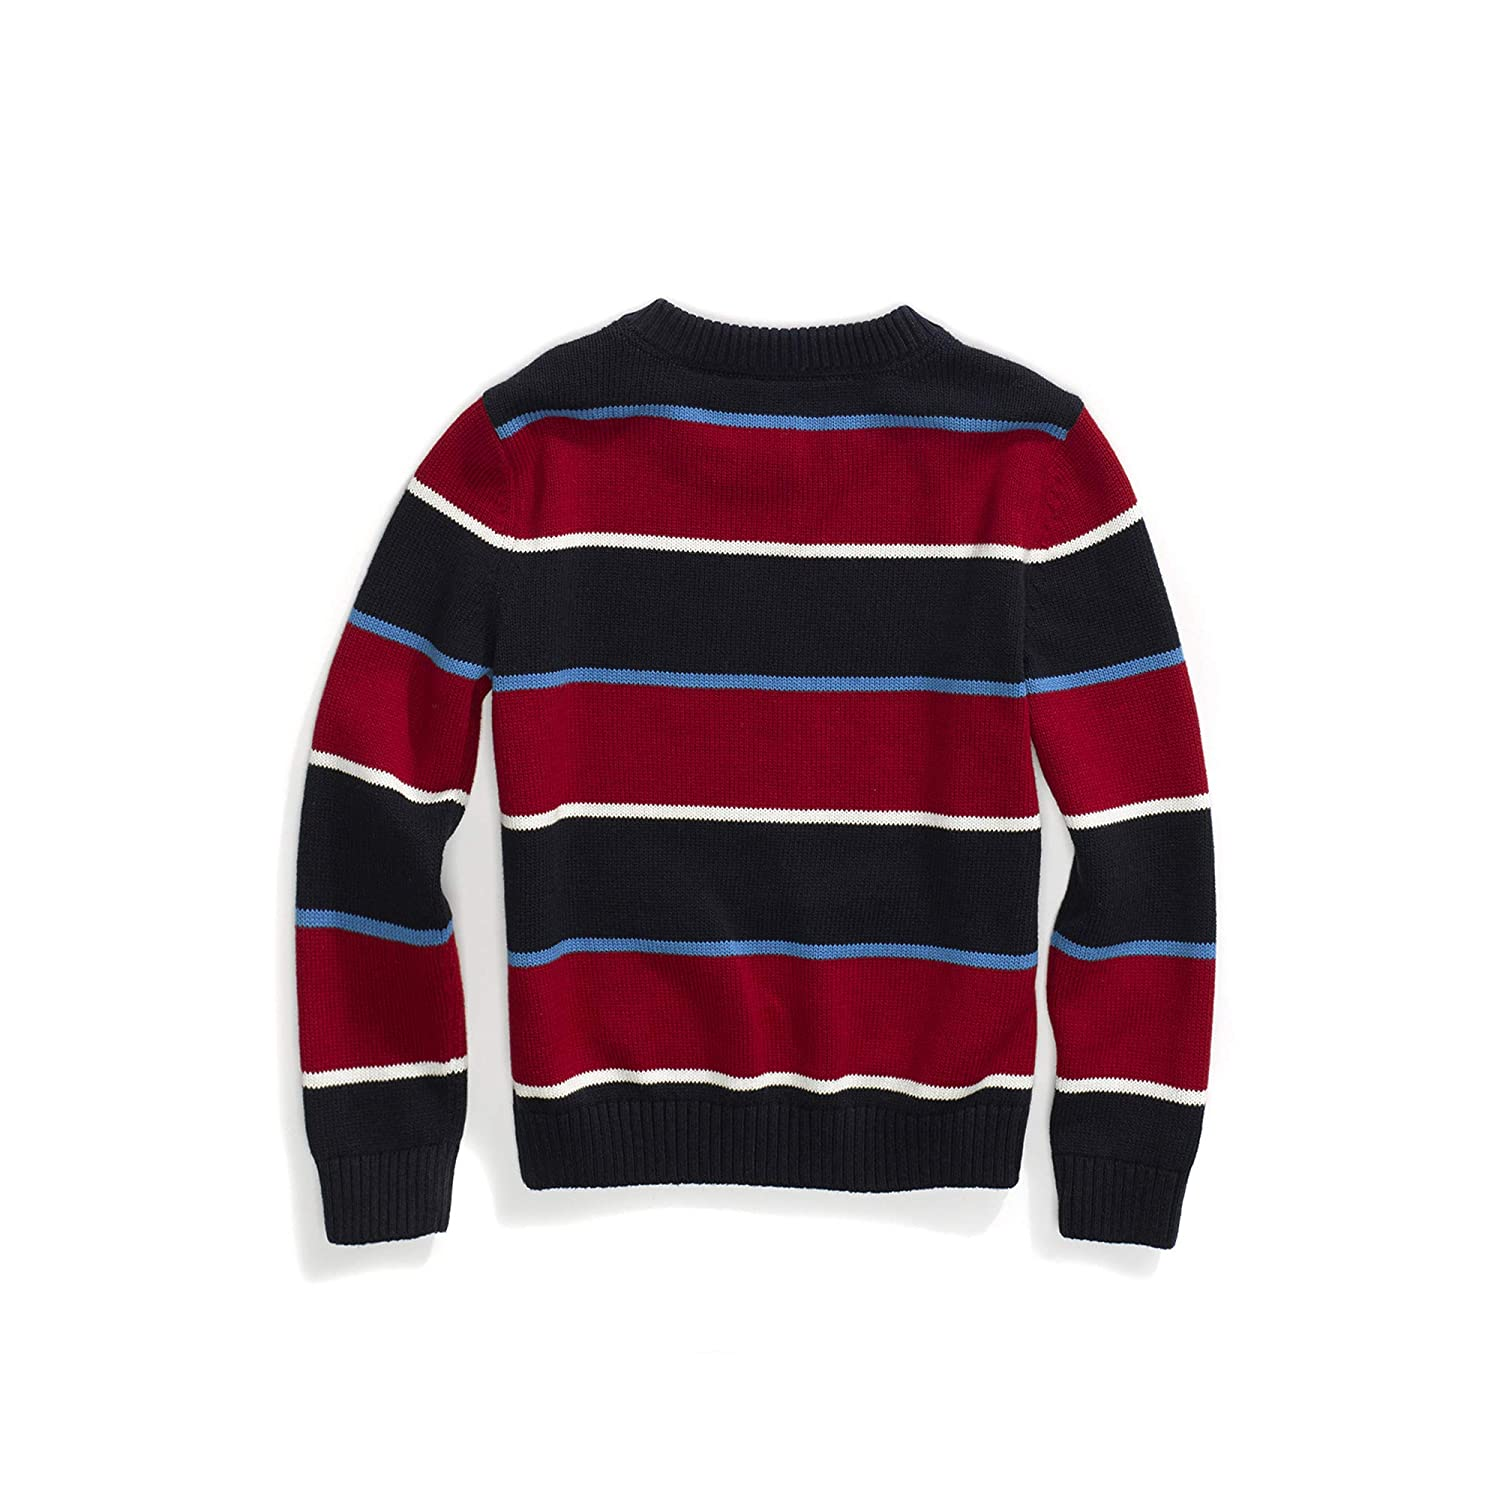 Tommy Hilfiger Boys Adaptive Sweater with Adjustable Shoulder Closure